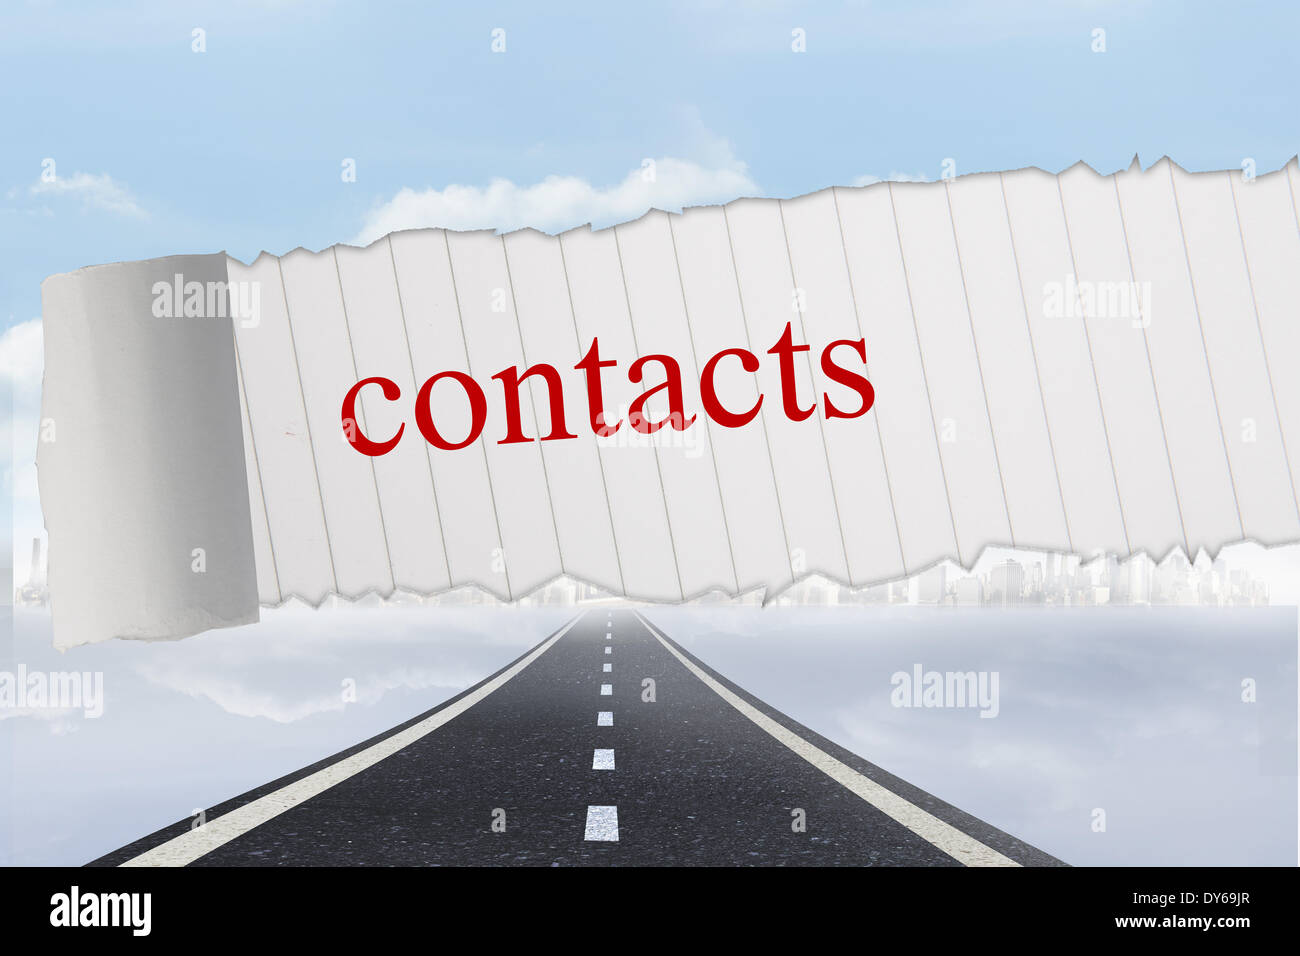 Contacts against open road background - Stock Image